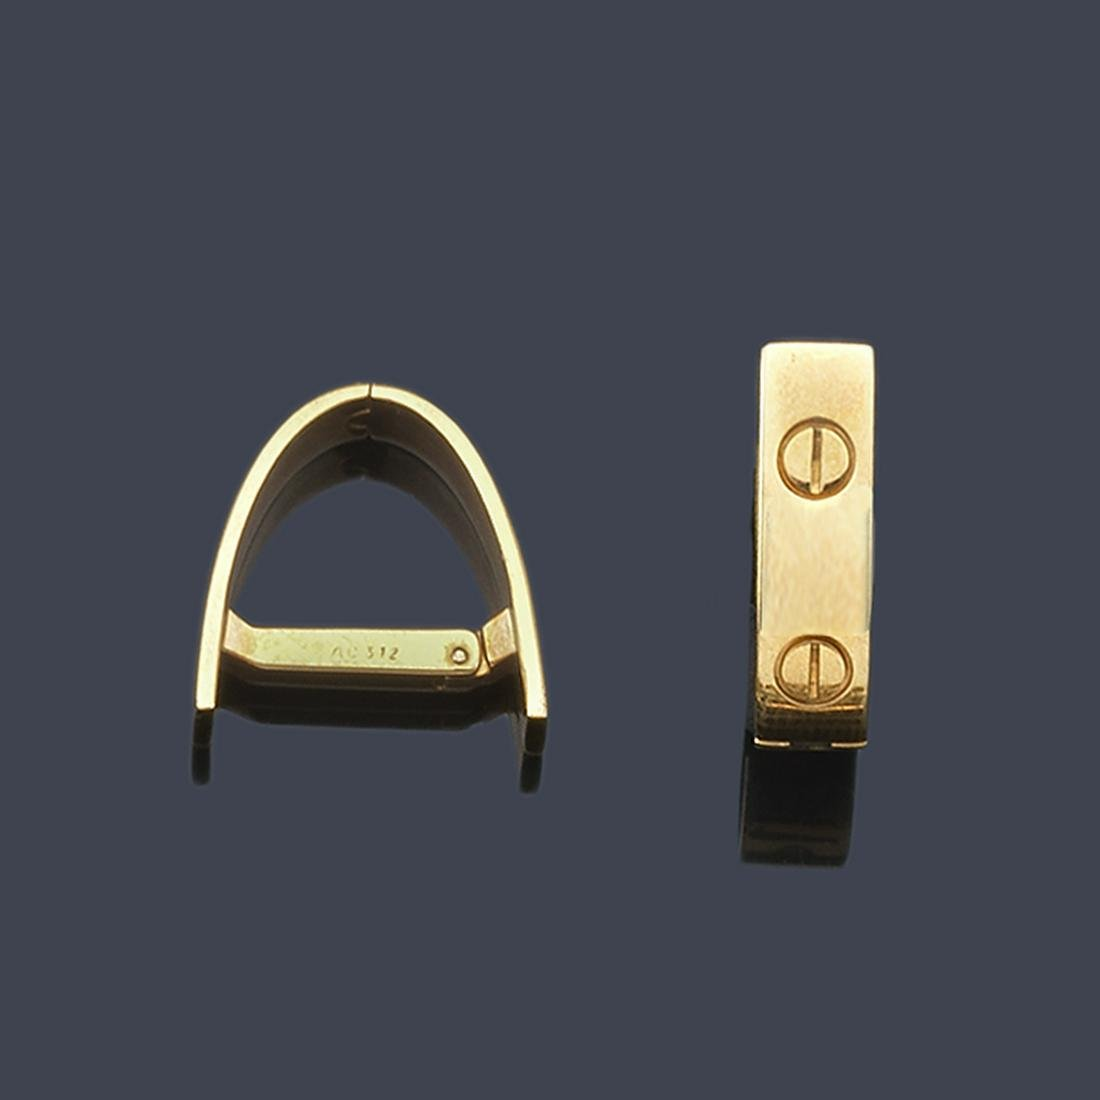 CARTIER - Cufflinks from the 'Love' collection by